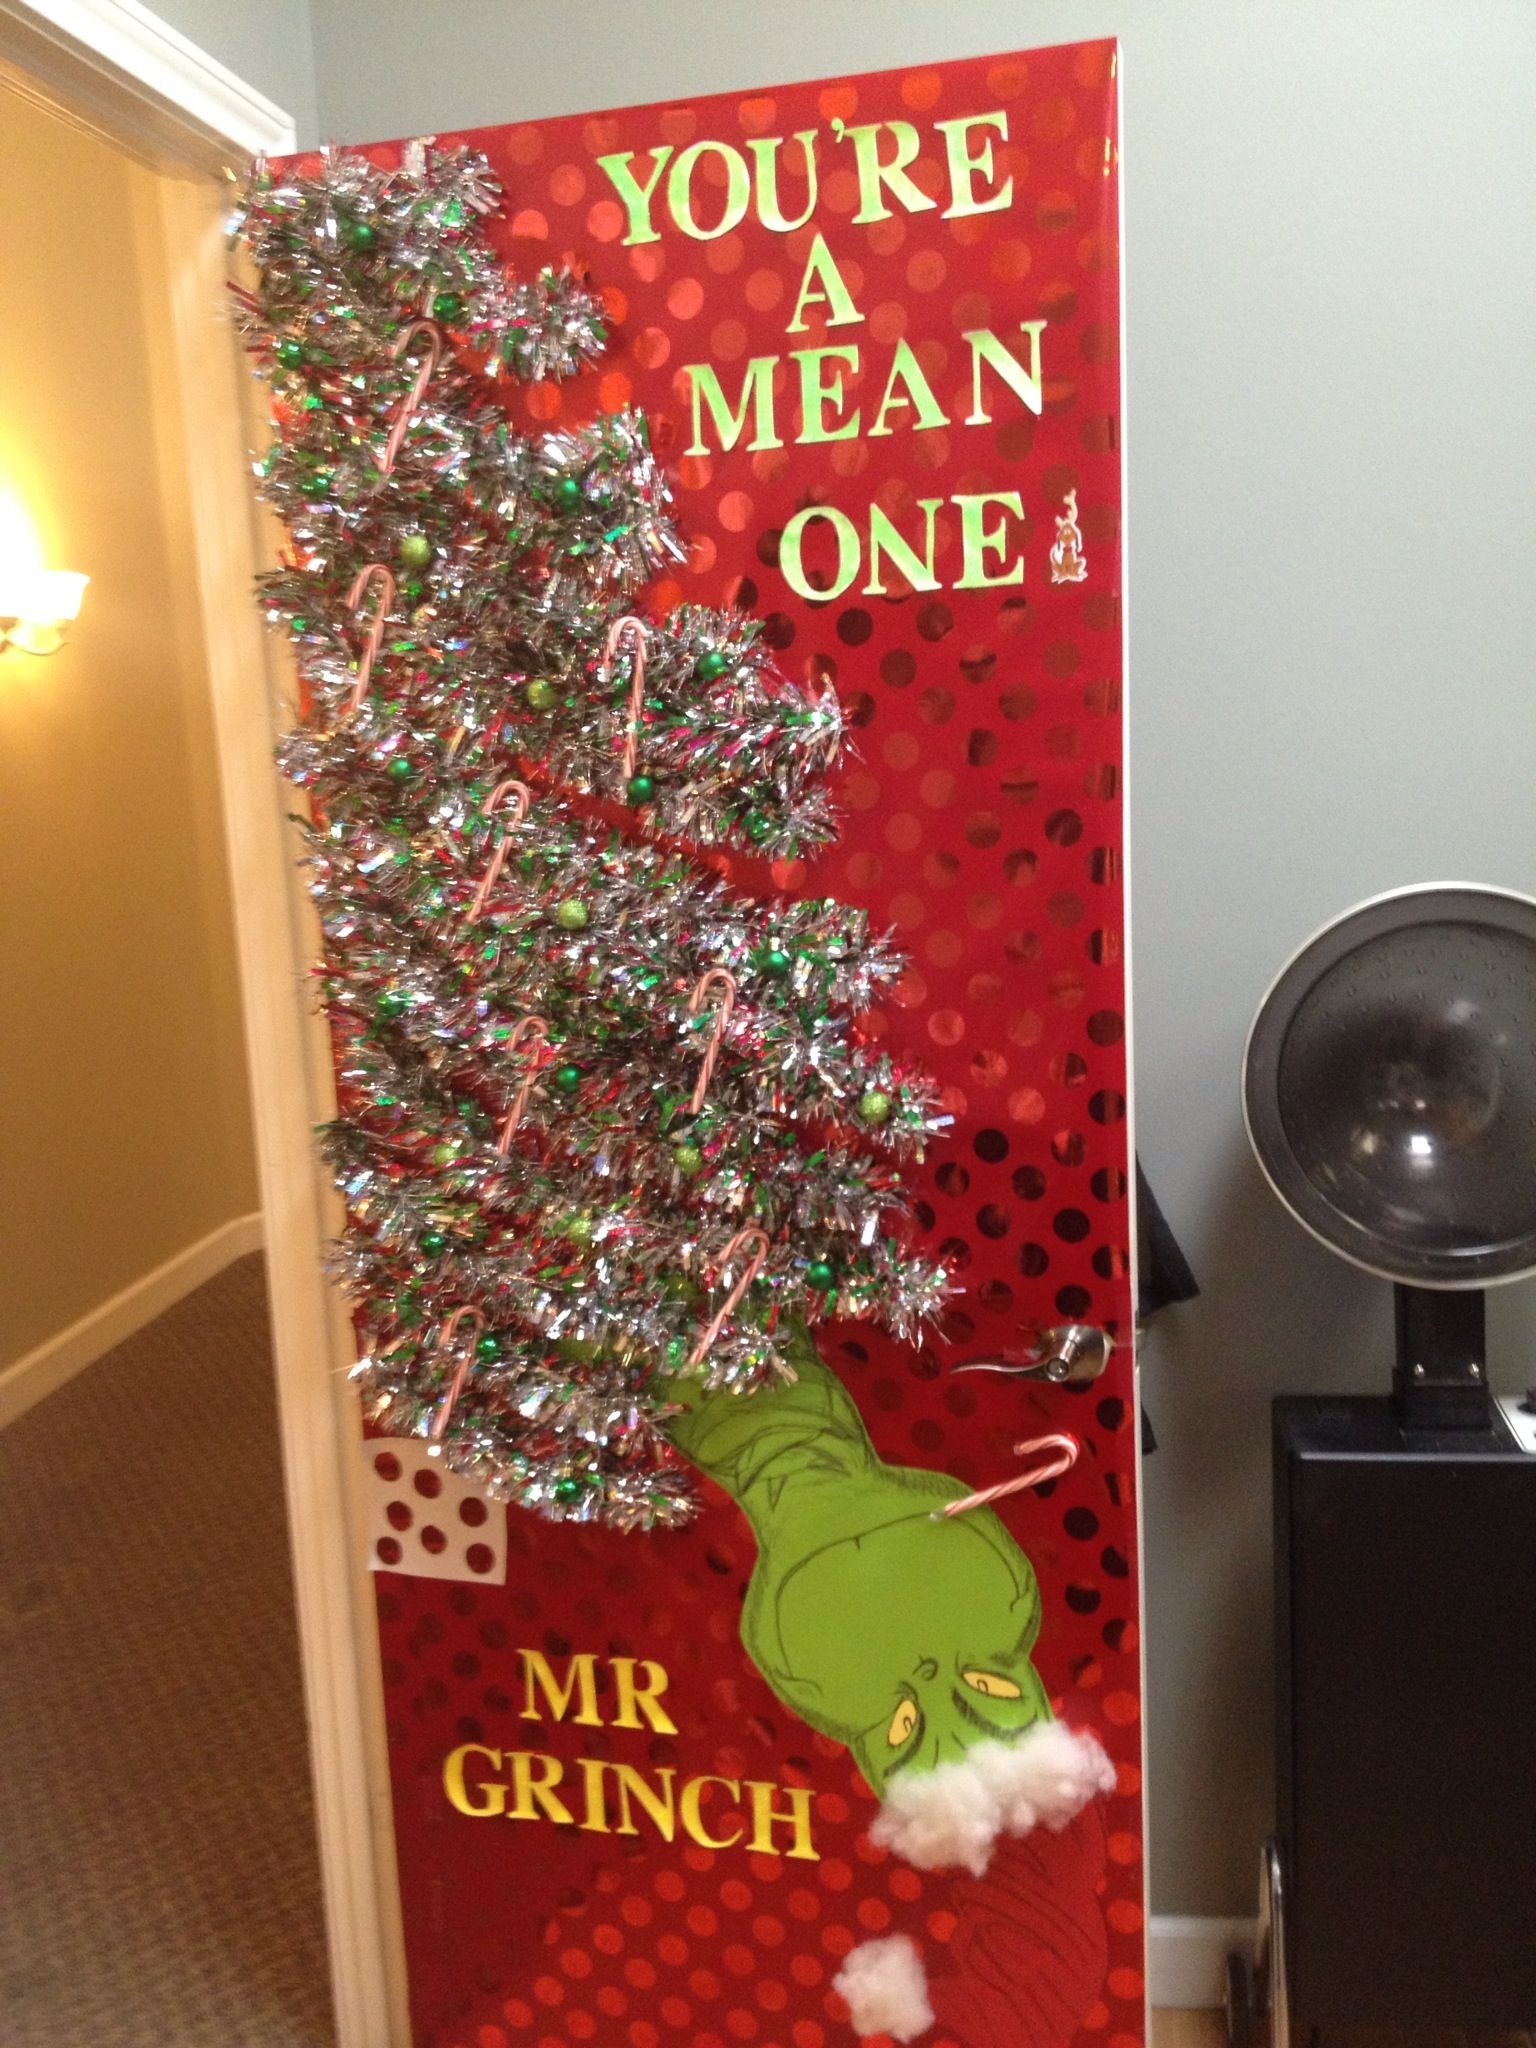 grinch stole christmas office decorations. your a mean one mr grinch stole christmas office decorations